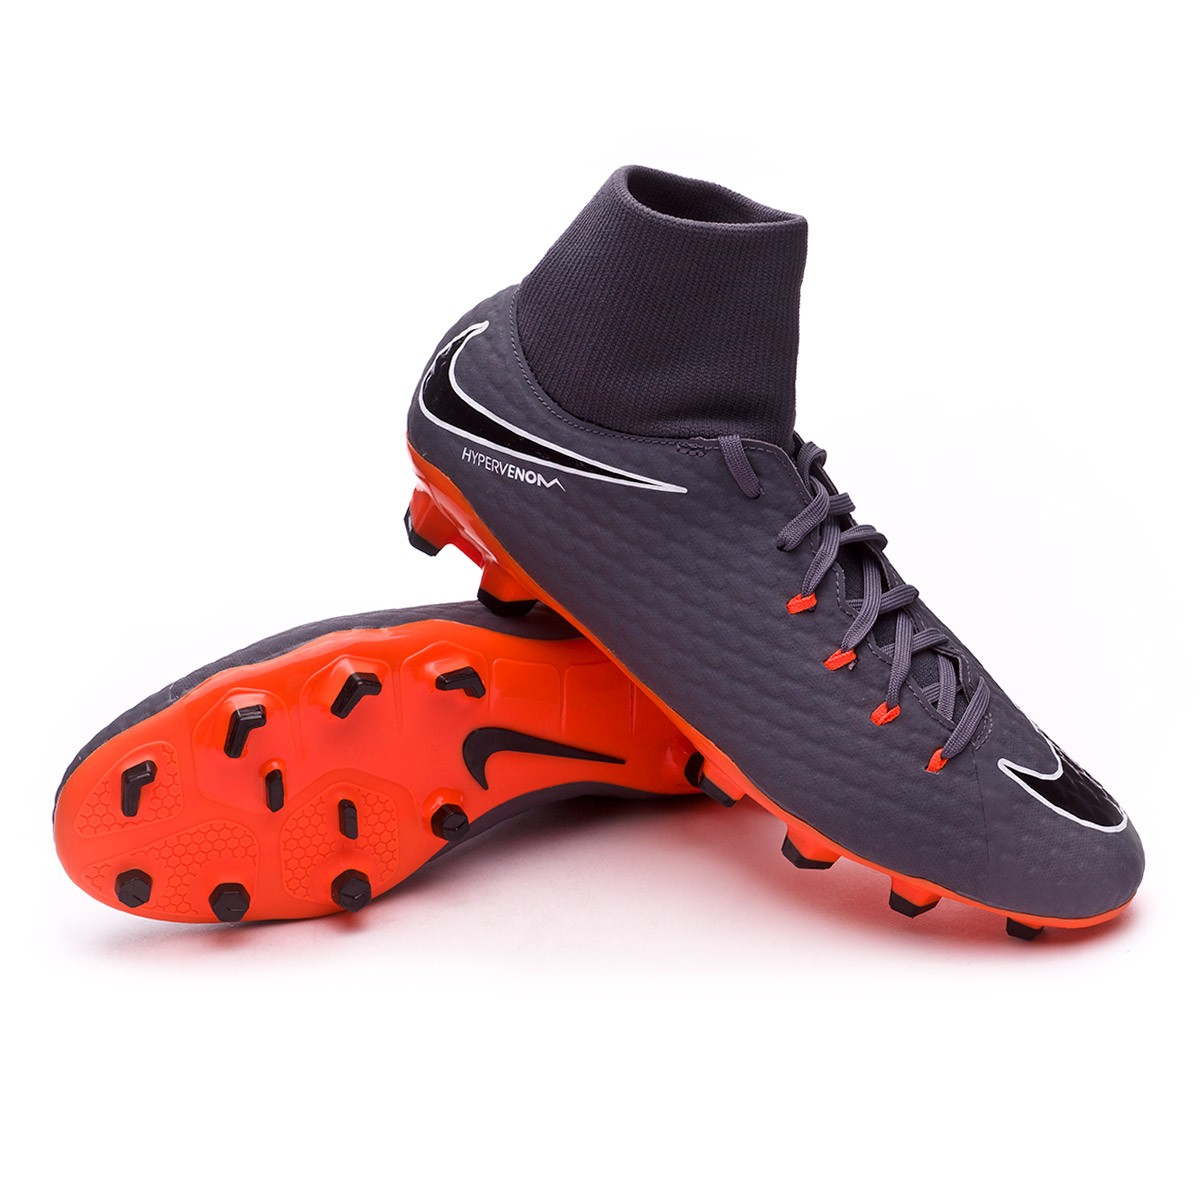 ... Bota Hypervenom Phantom III Academy DF FG Dark grey-Total orange-White.  CATEGORY ba5448b4fe